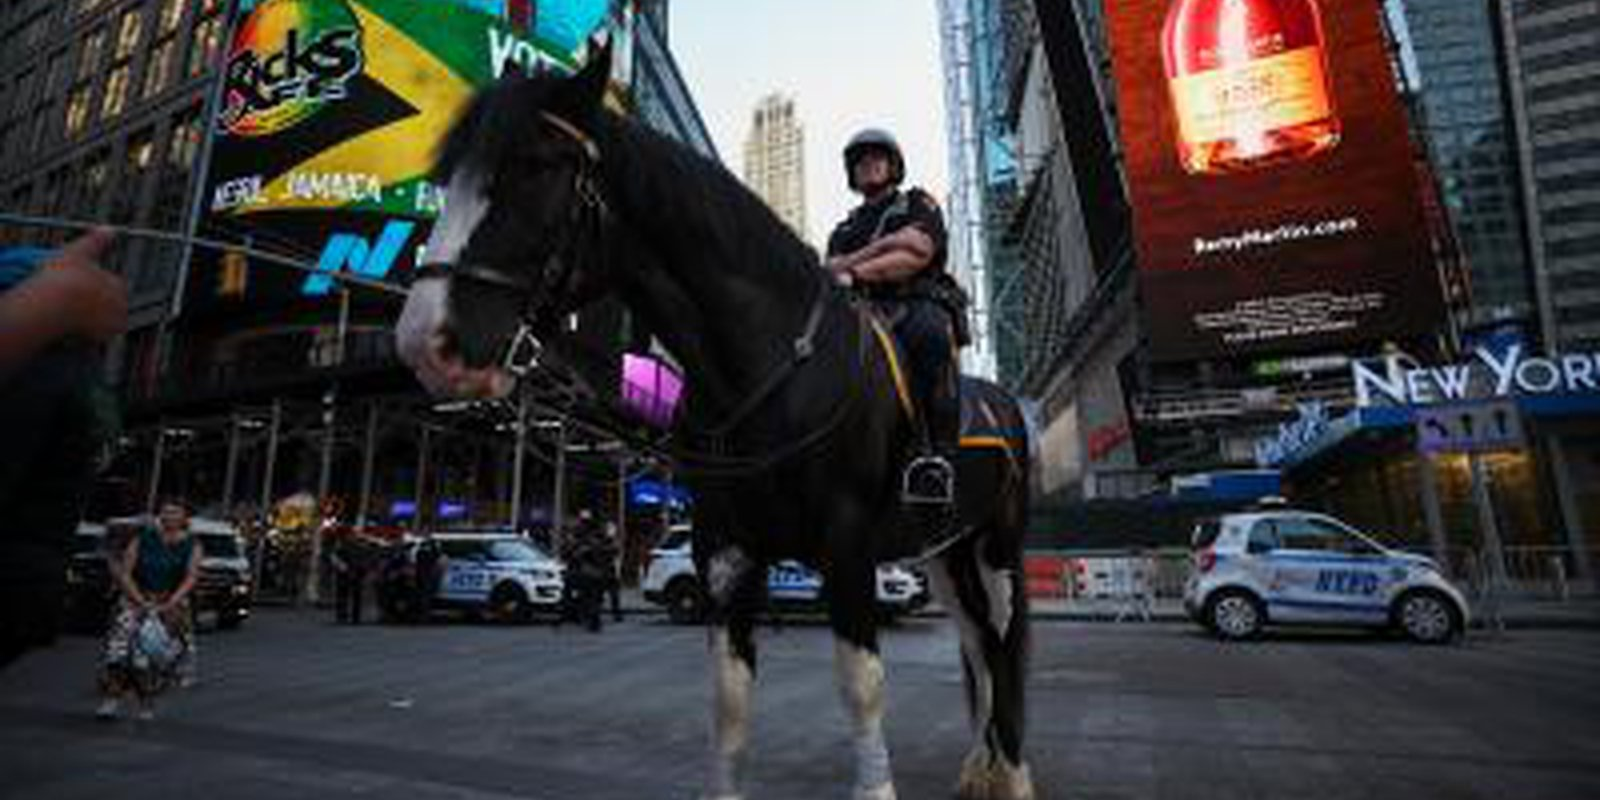 Image — Police horse inTimes Square, New York City on the day it was announced fully vaccinated peopleno longer have to wear masks in most circumstances. Photo by Tayfun Coskun/Anadolu Agency via Getty Images.